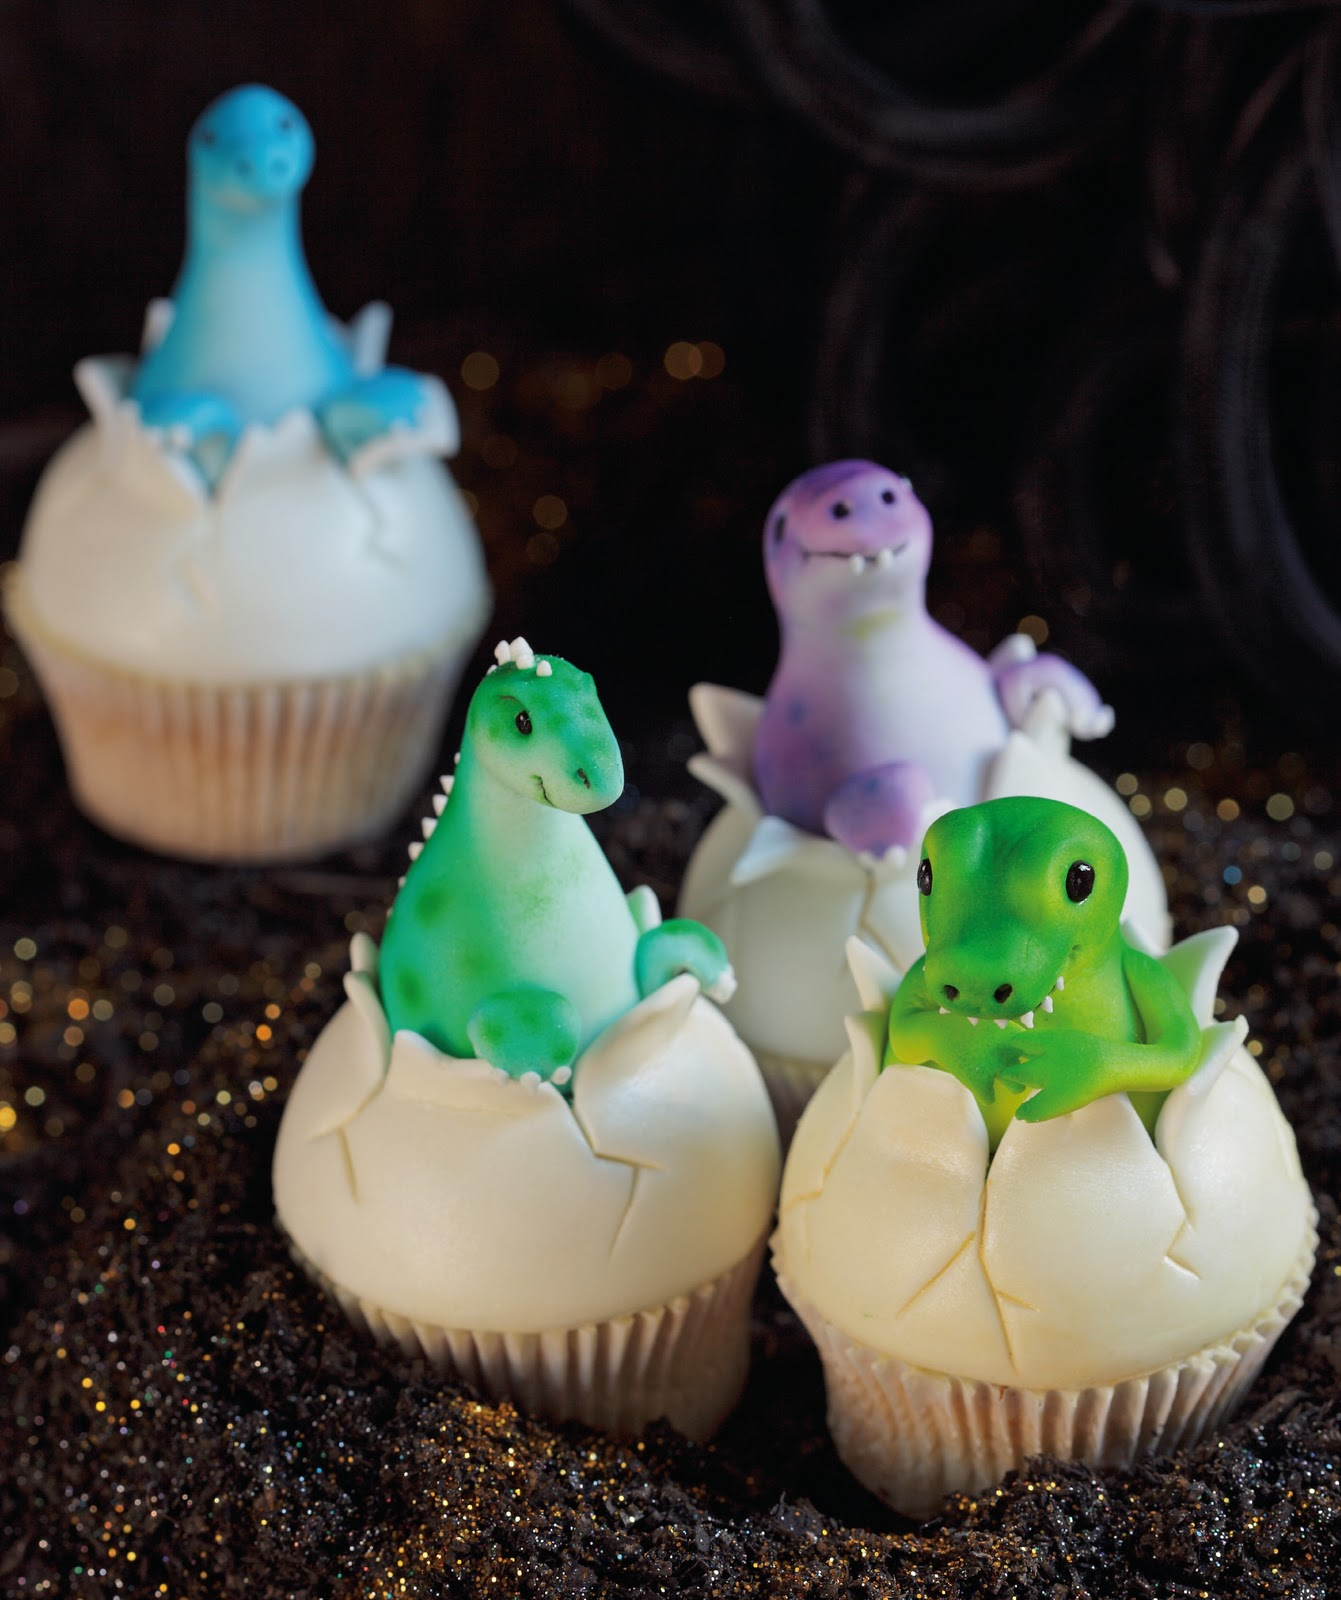 ... fantastic dinosaur cupcakes from the latest Planet Cake Cupcakes book